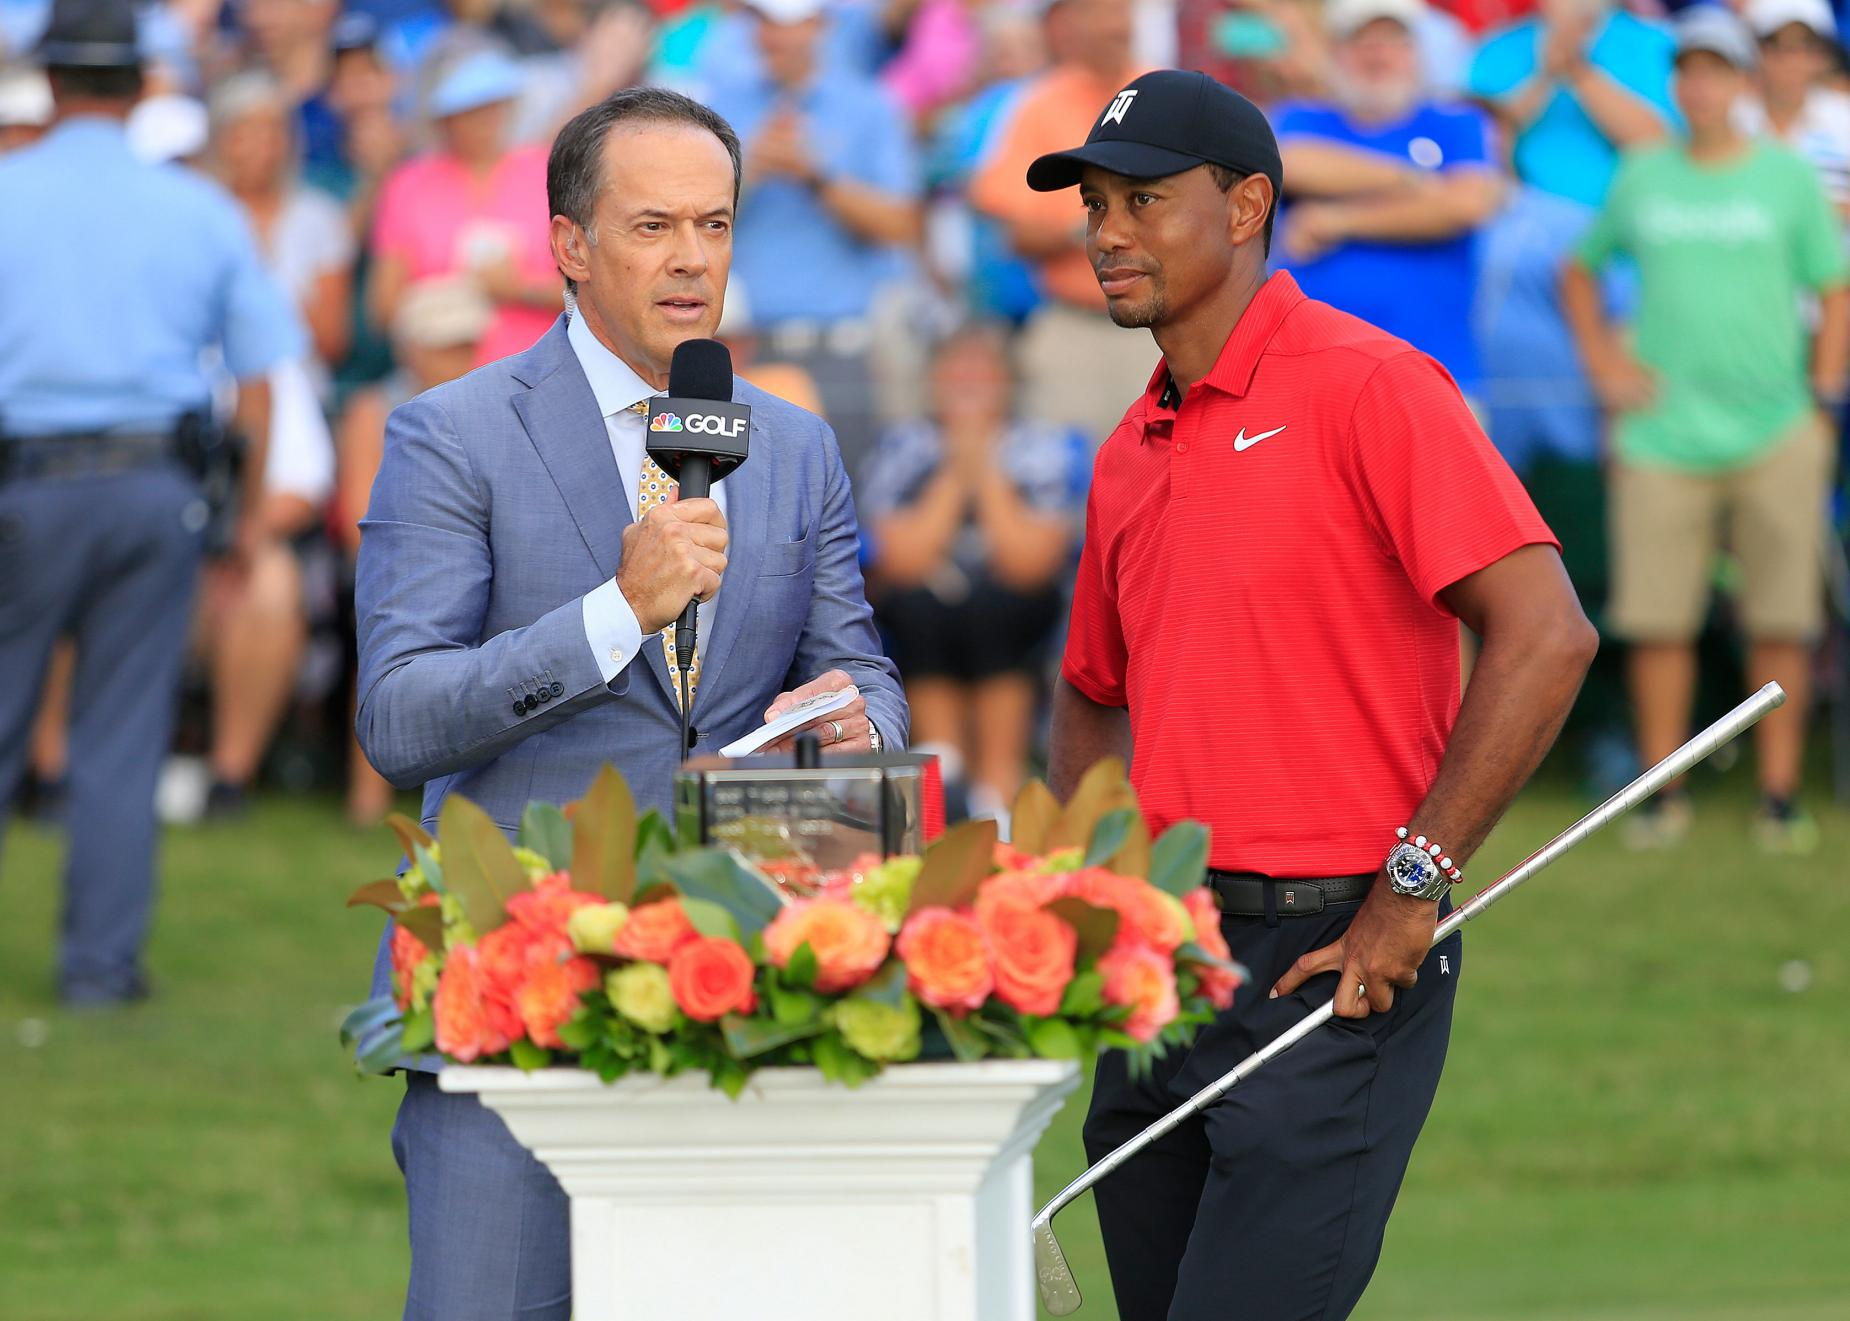 tiger-woods-tv-interview-nbc-2018.jpg